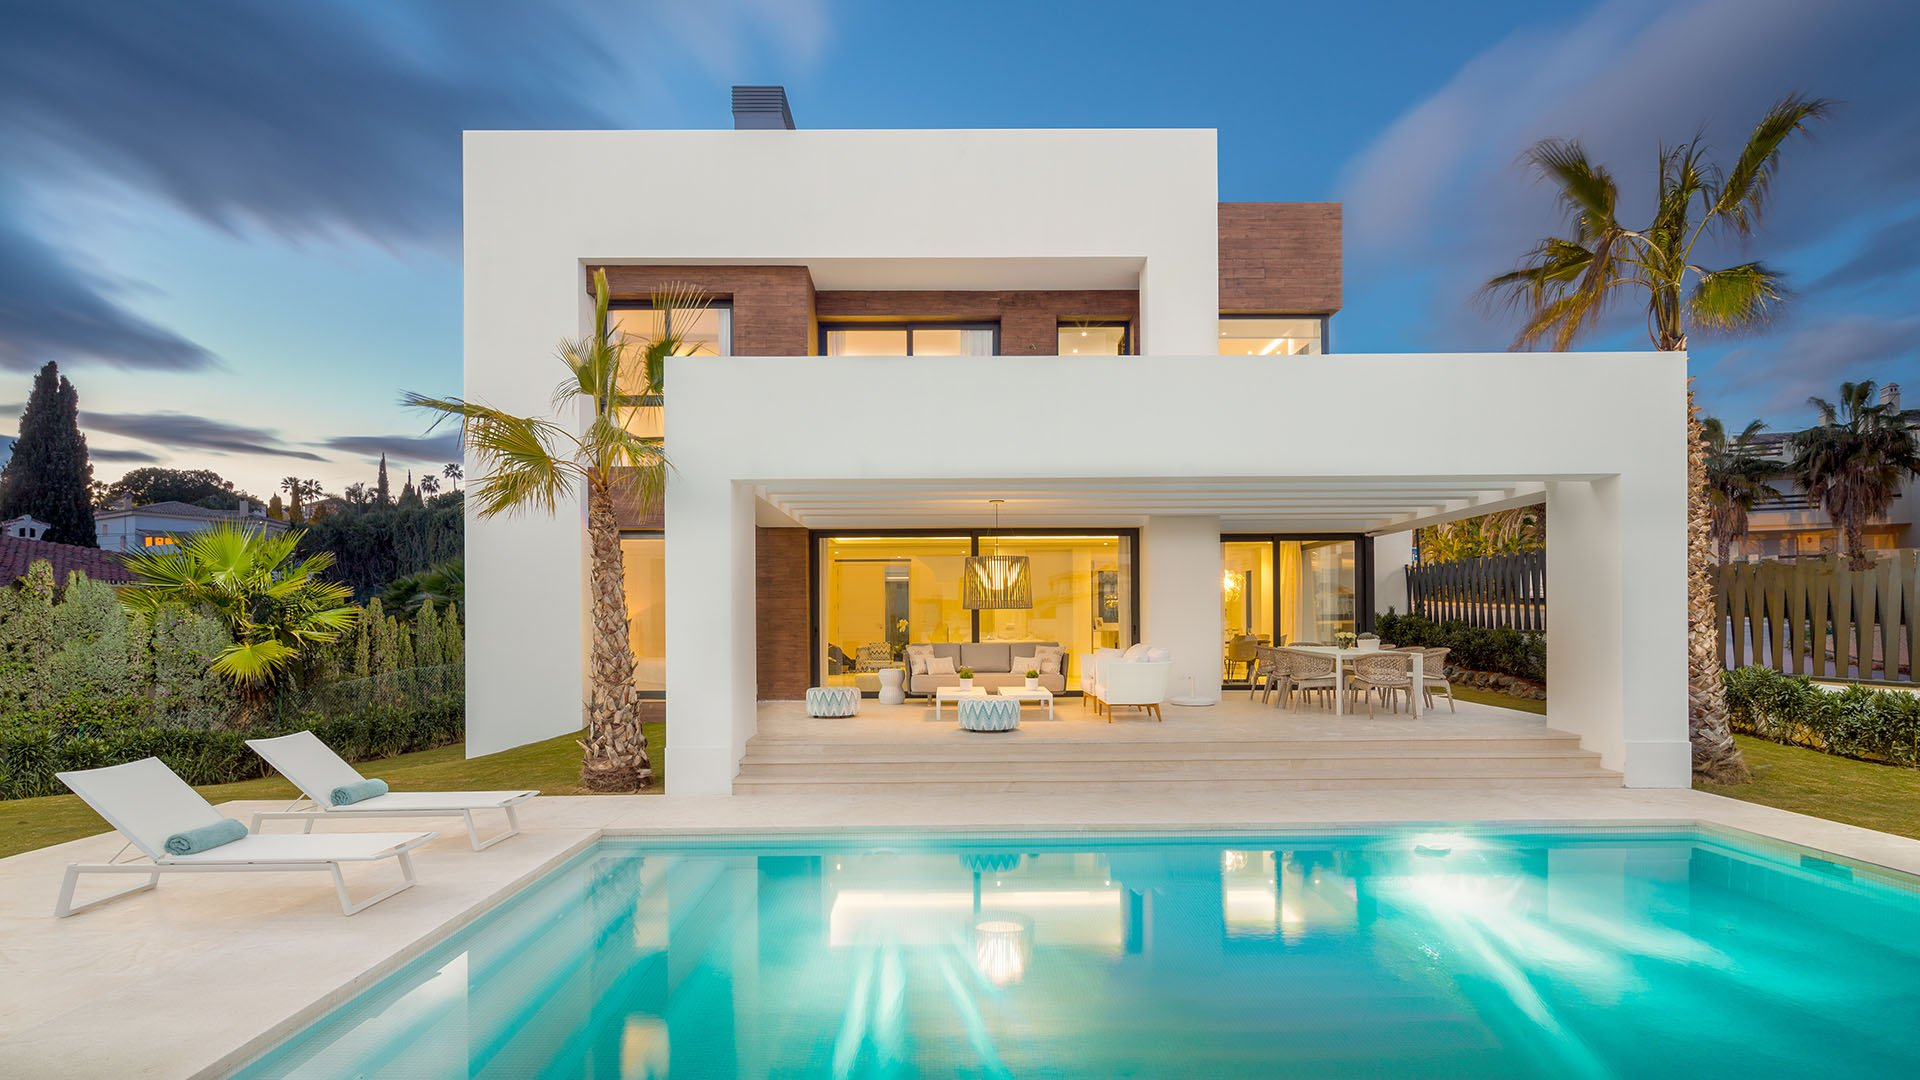 Los Olivos del Paraíso Phase 2: Contemporary villas on the New Golden Mile